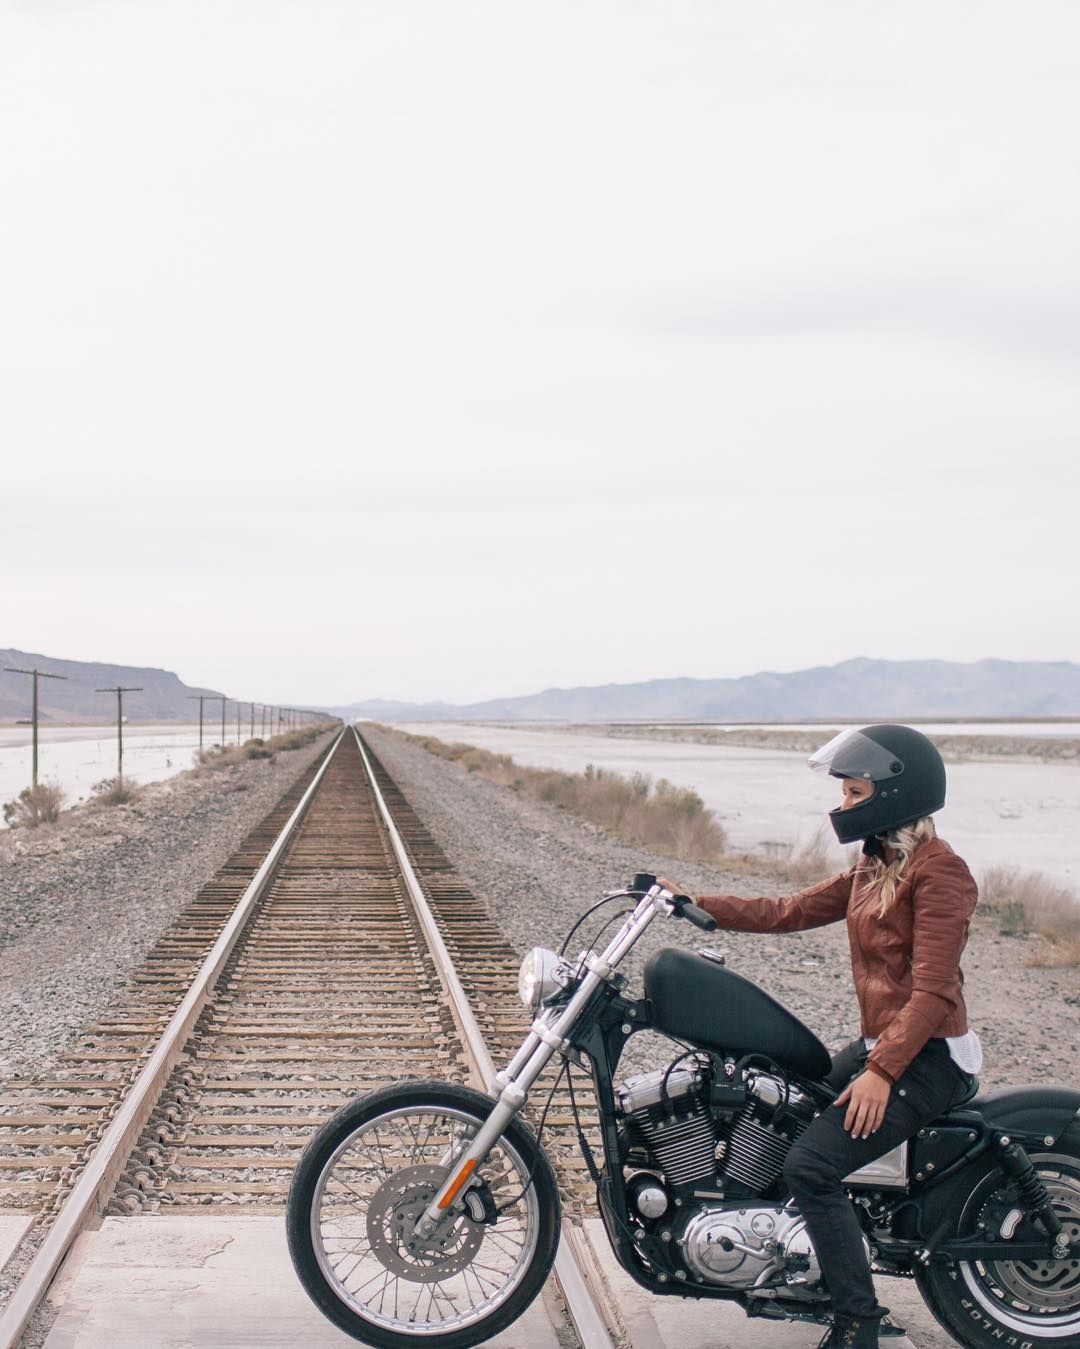 10 Clever ways to make money while riding your motorcycle